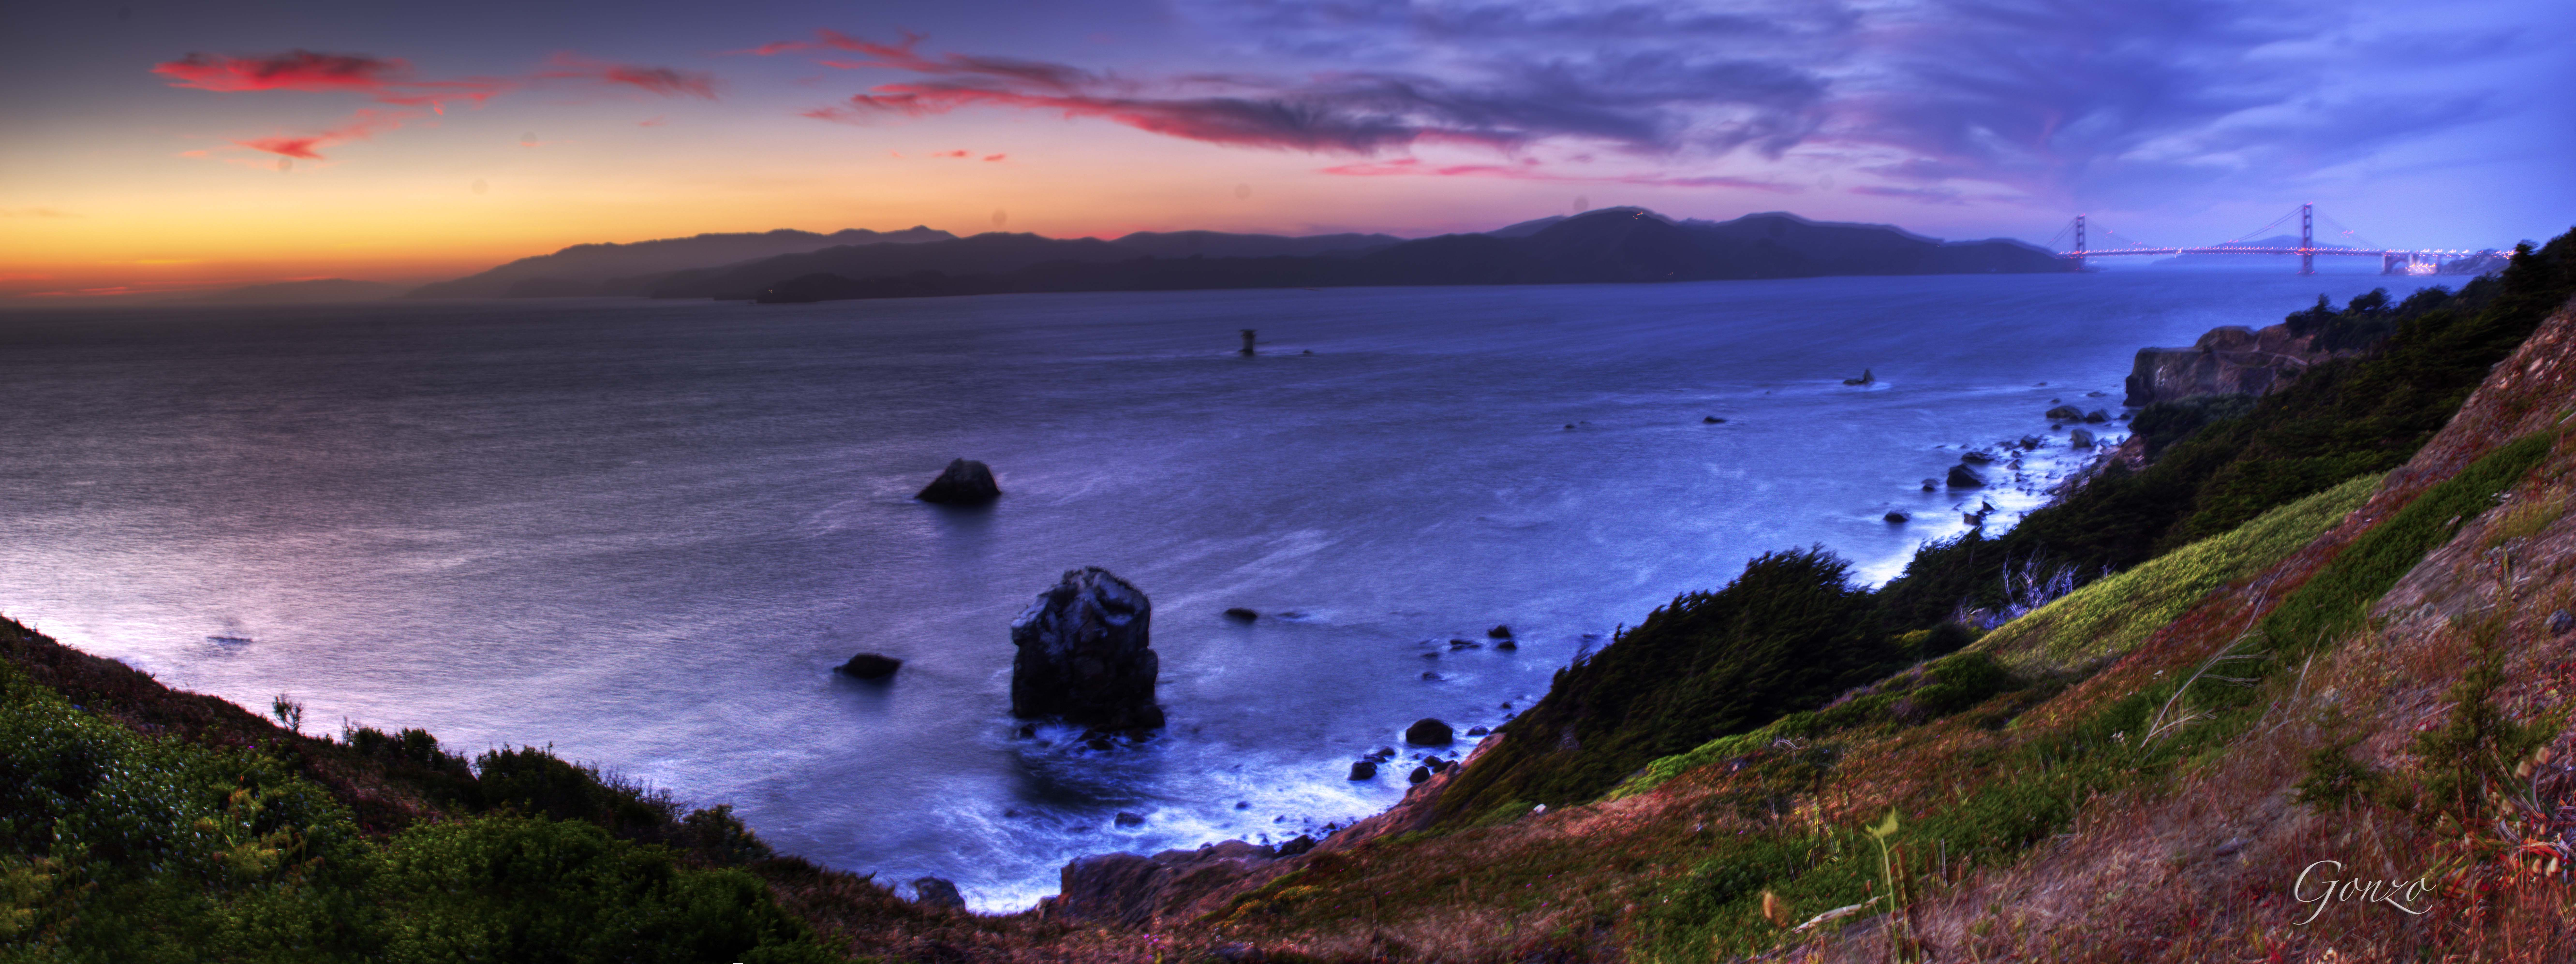 A View from Lands End